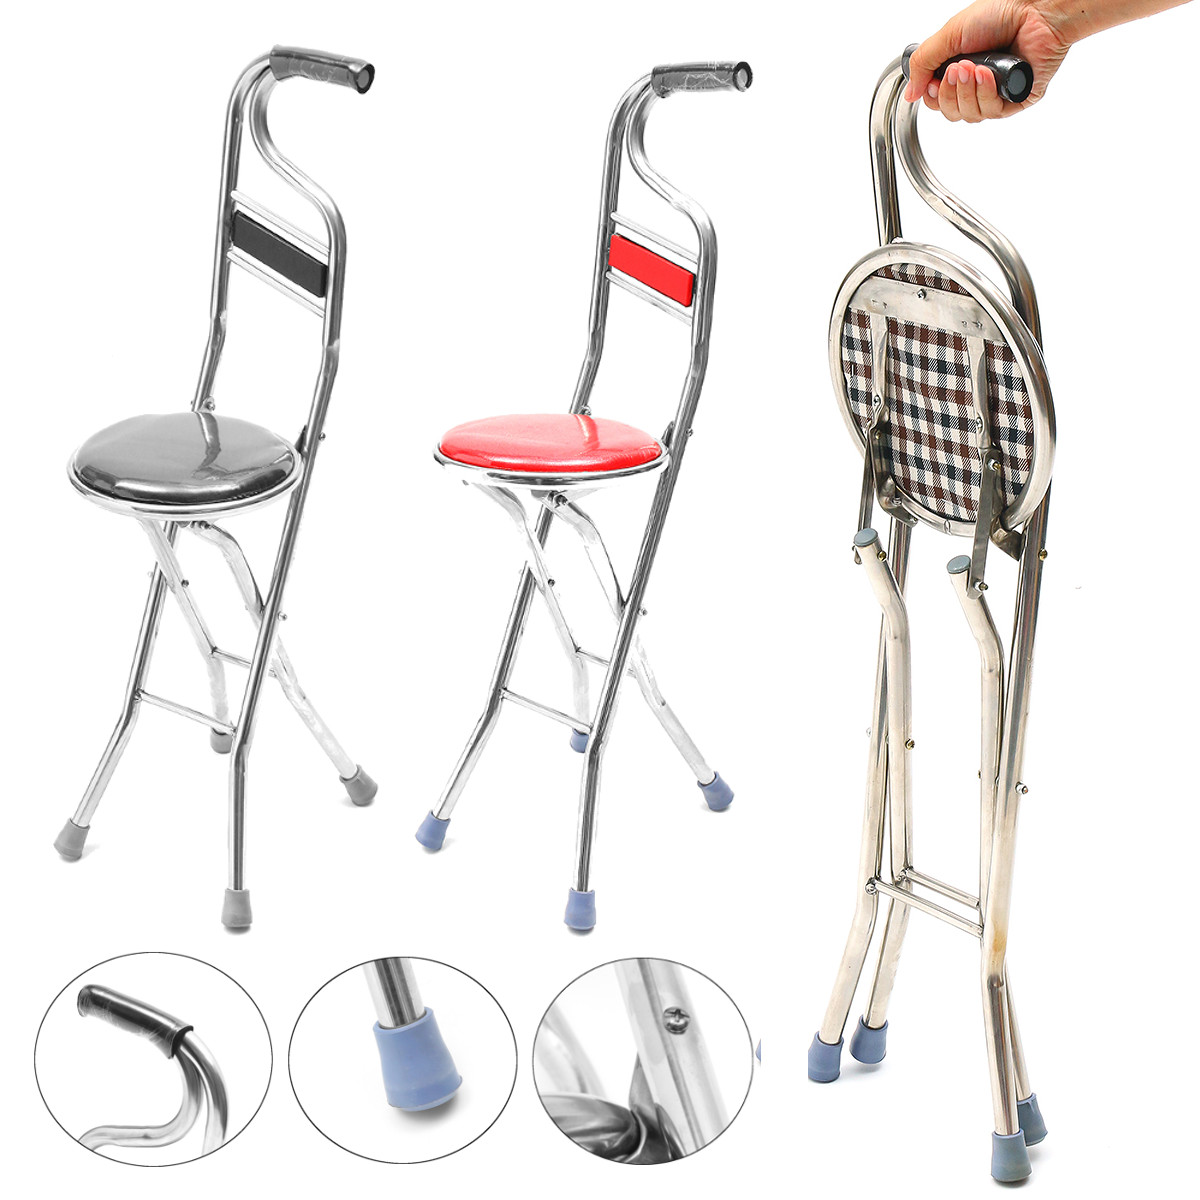 Beau 2 In 1 Adjustable Stainless Walking Cane Stick Elderly Care Portable  Folding Walking Stick Travel Cane With Chair Seat Stool